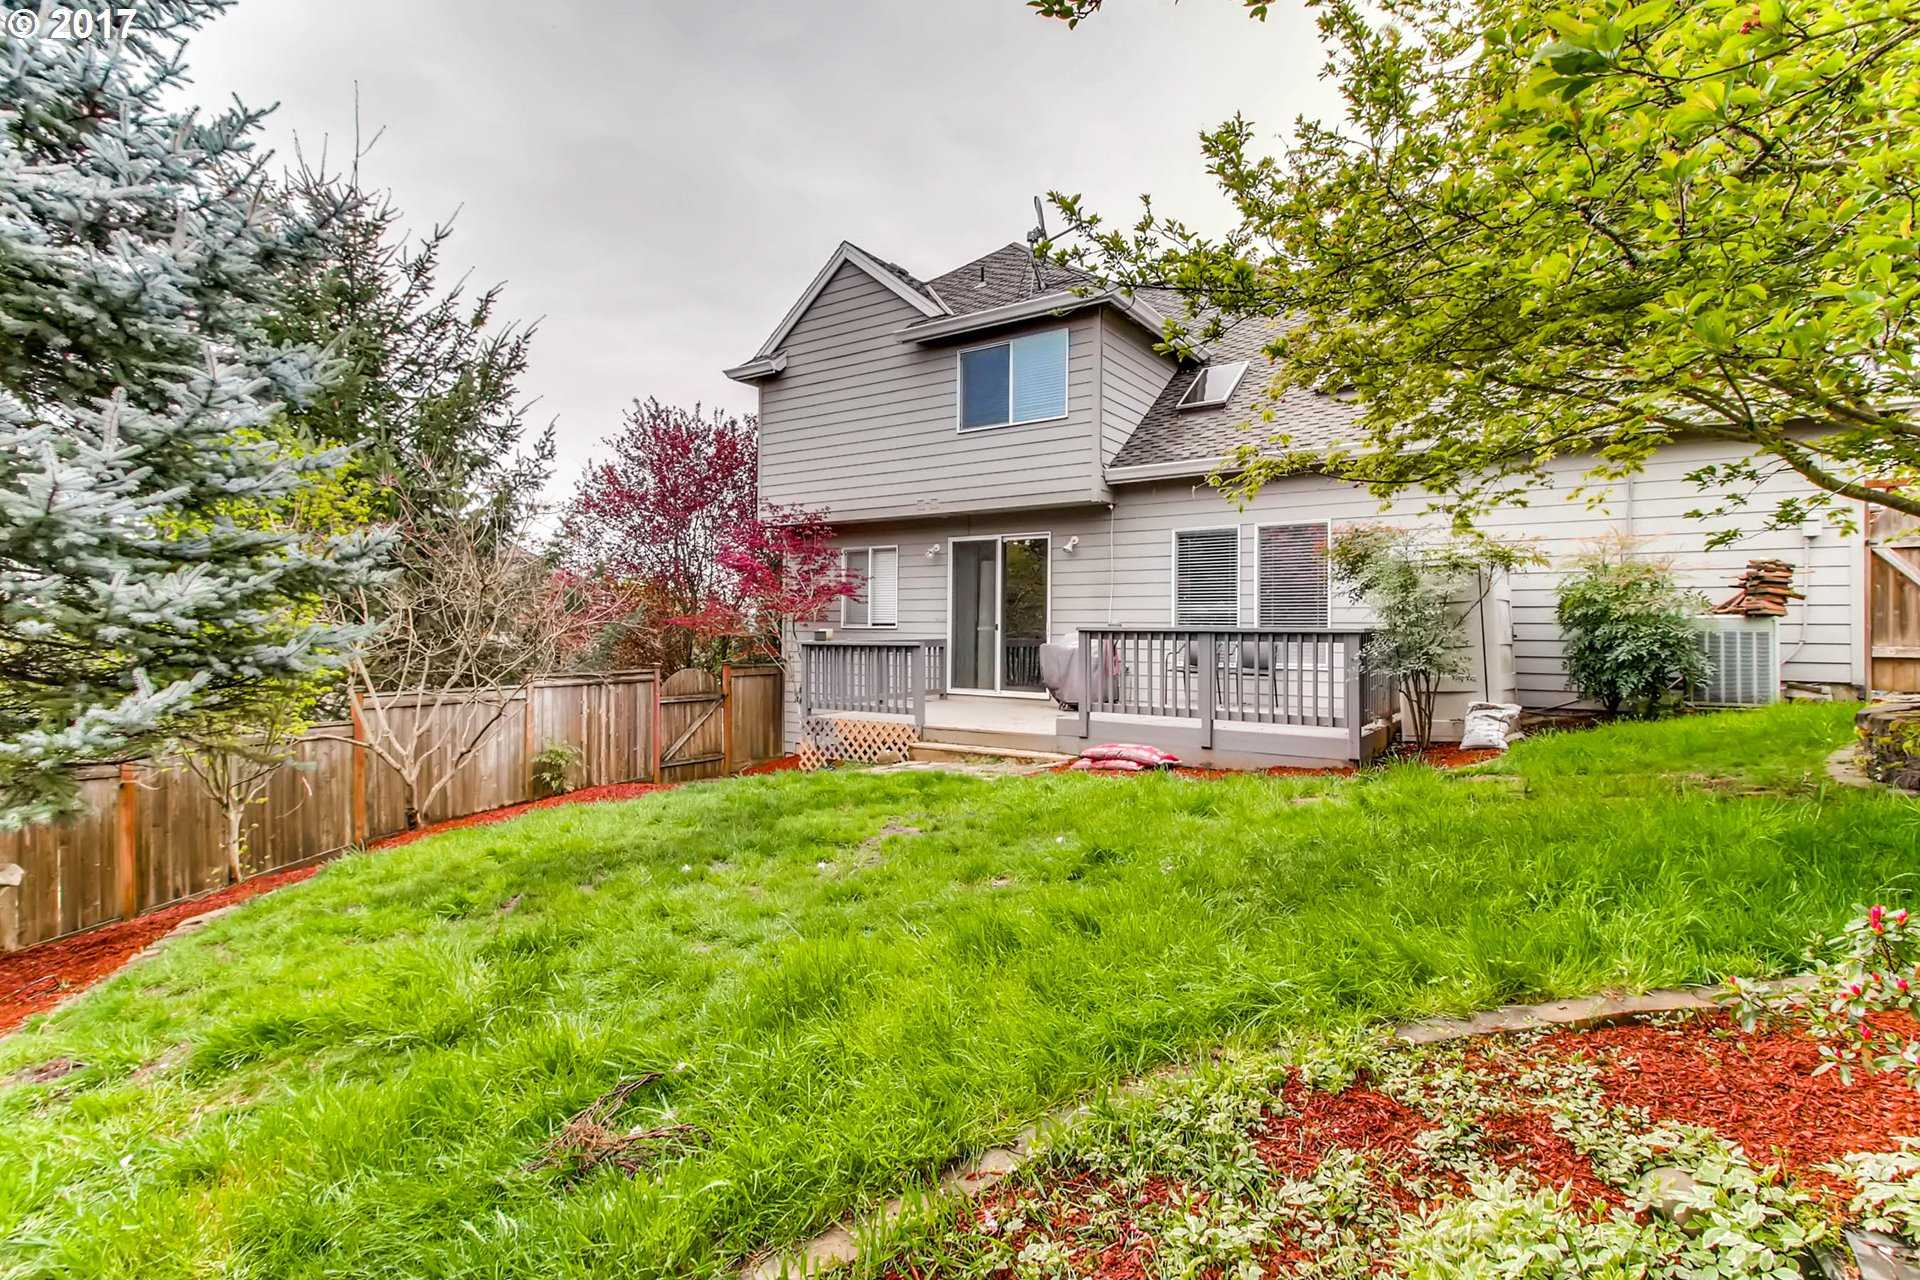 $474,900 - 5Br/3Ba -  for Sale in Summit At Cooper Mountain, Beaverton